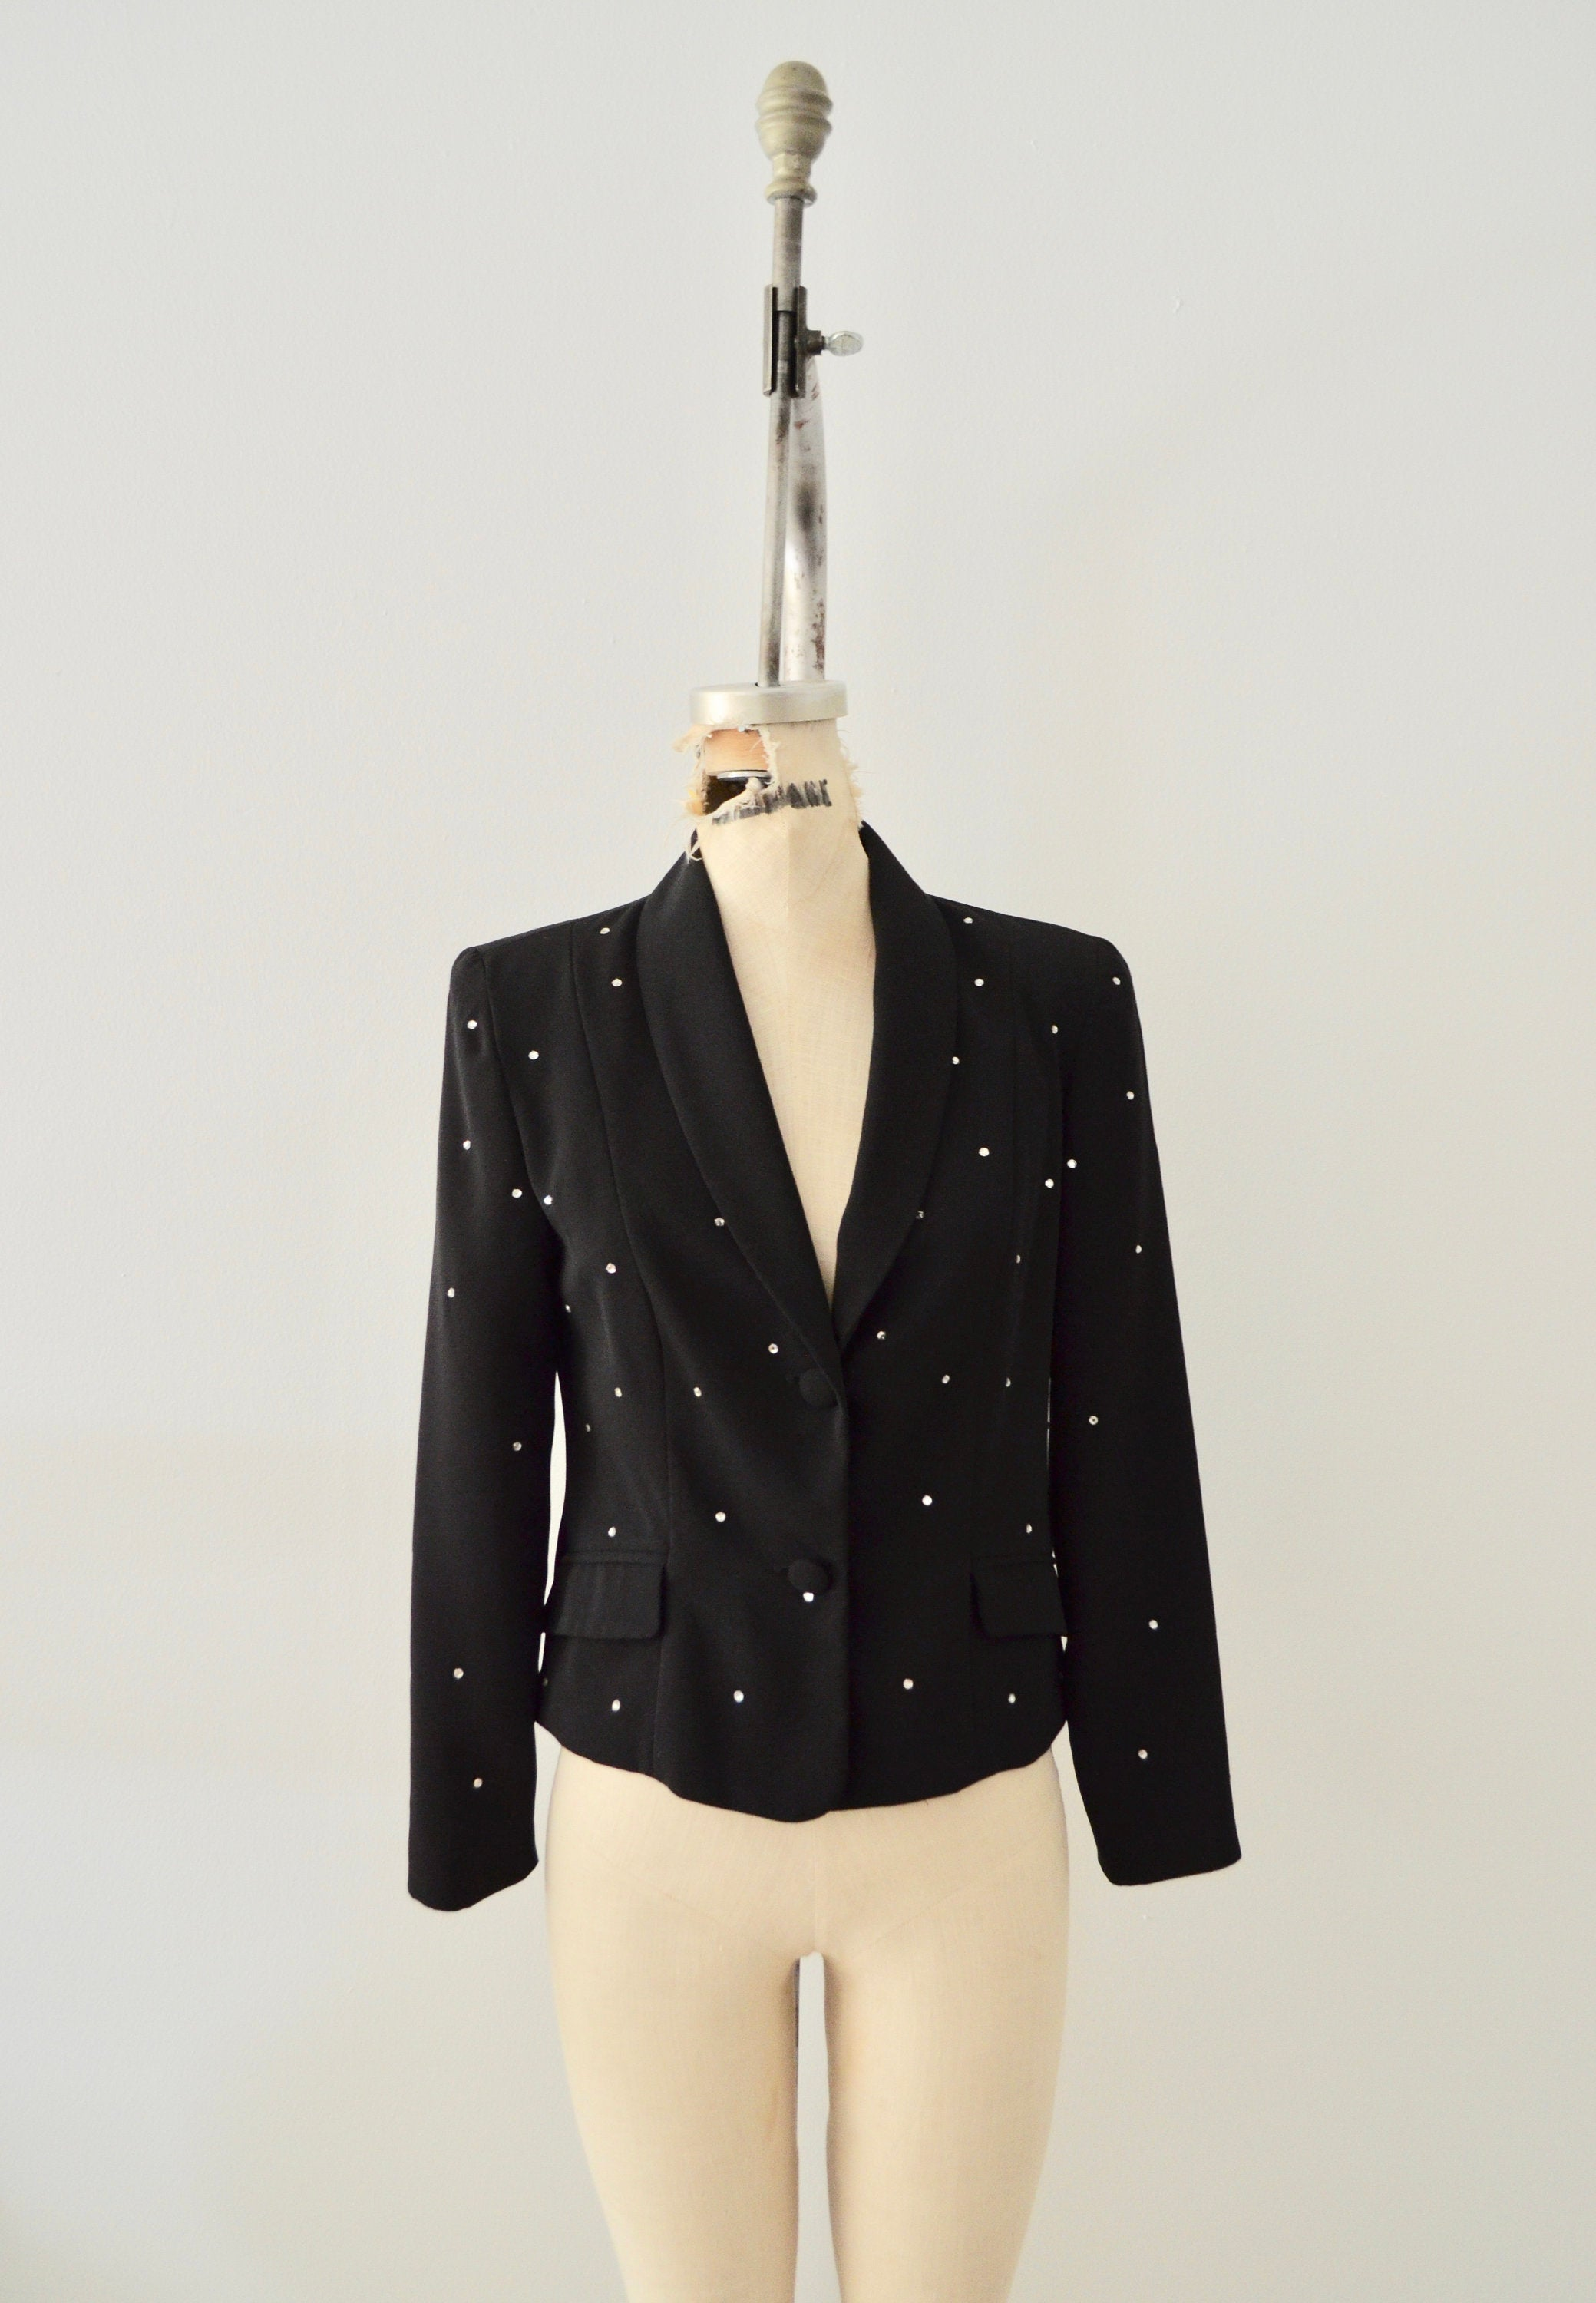 Shoulder Pads Black Tailored Blazer Bedazzled Crystal Embellishment Fall Style Russel Kemp